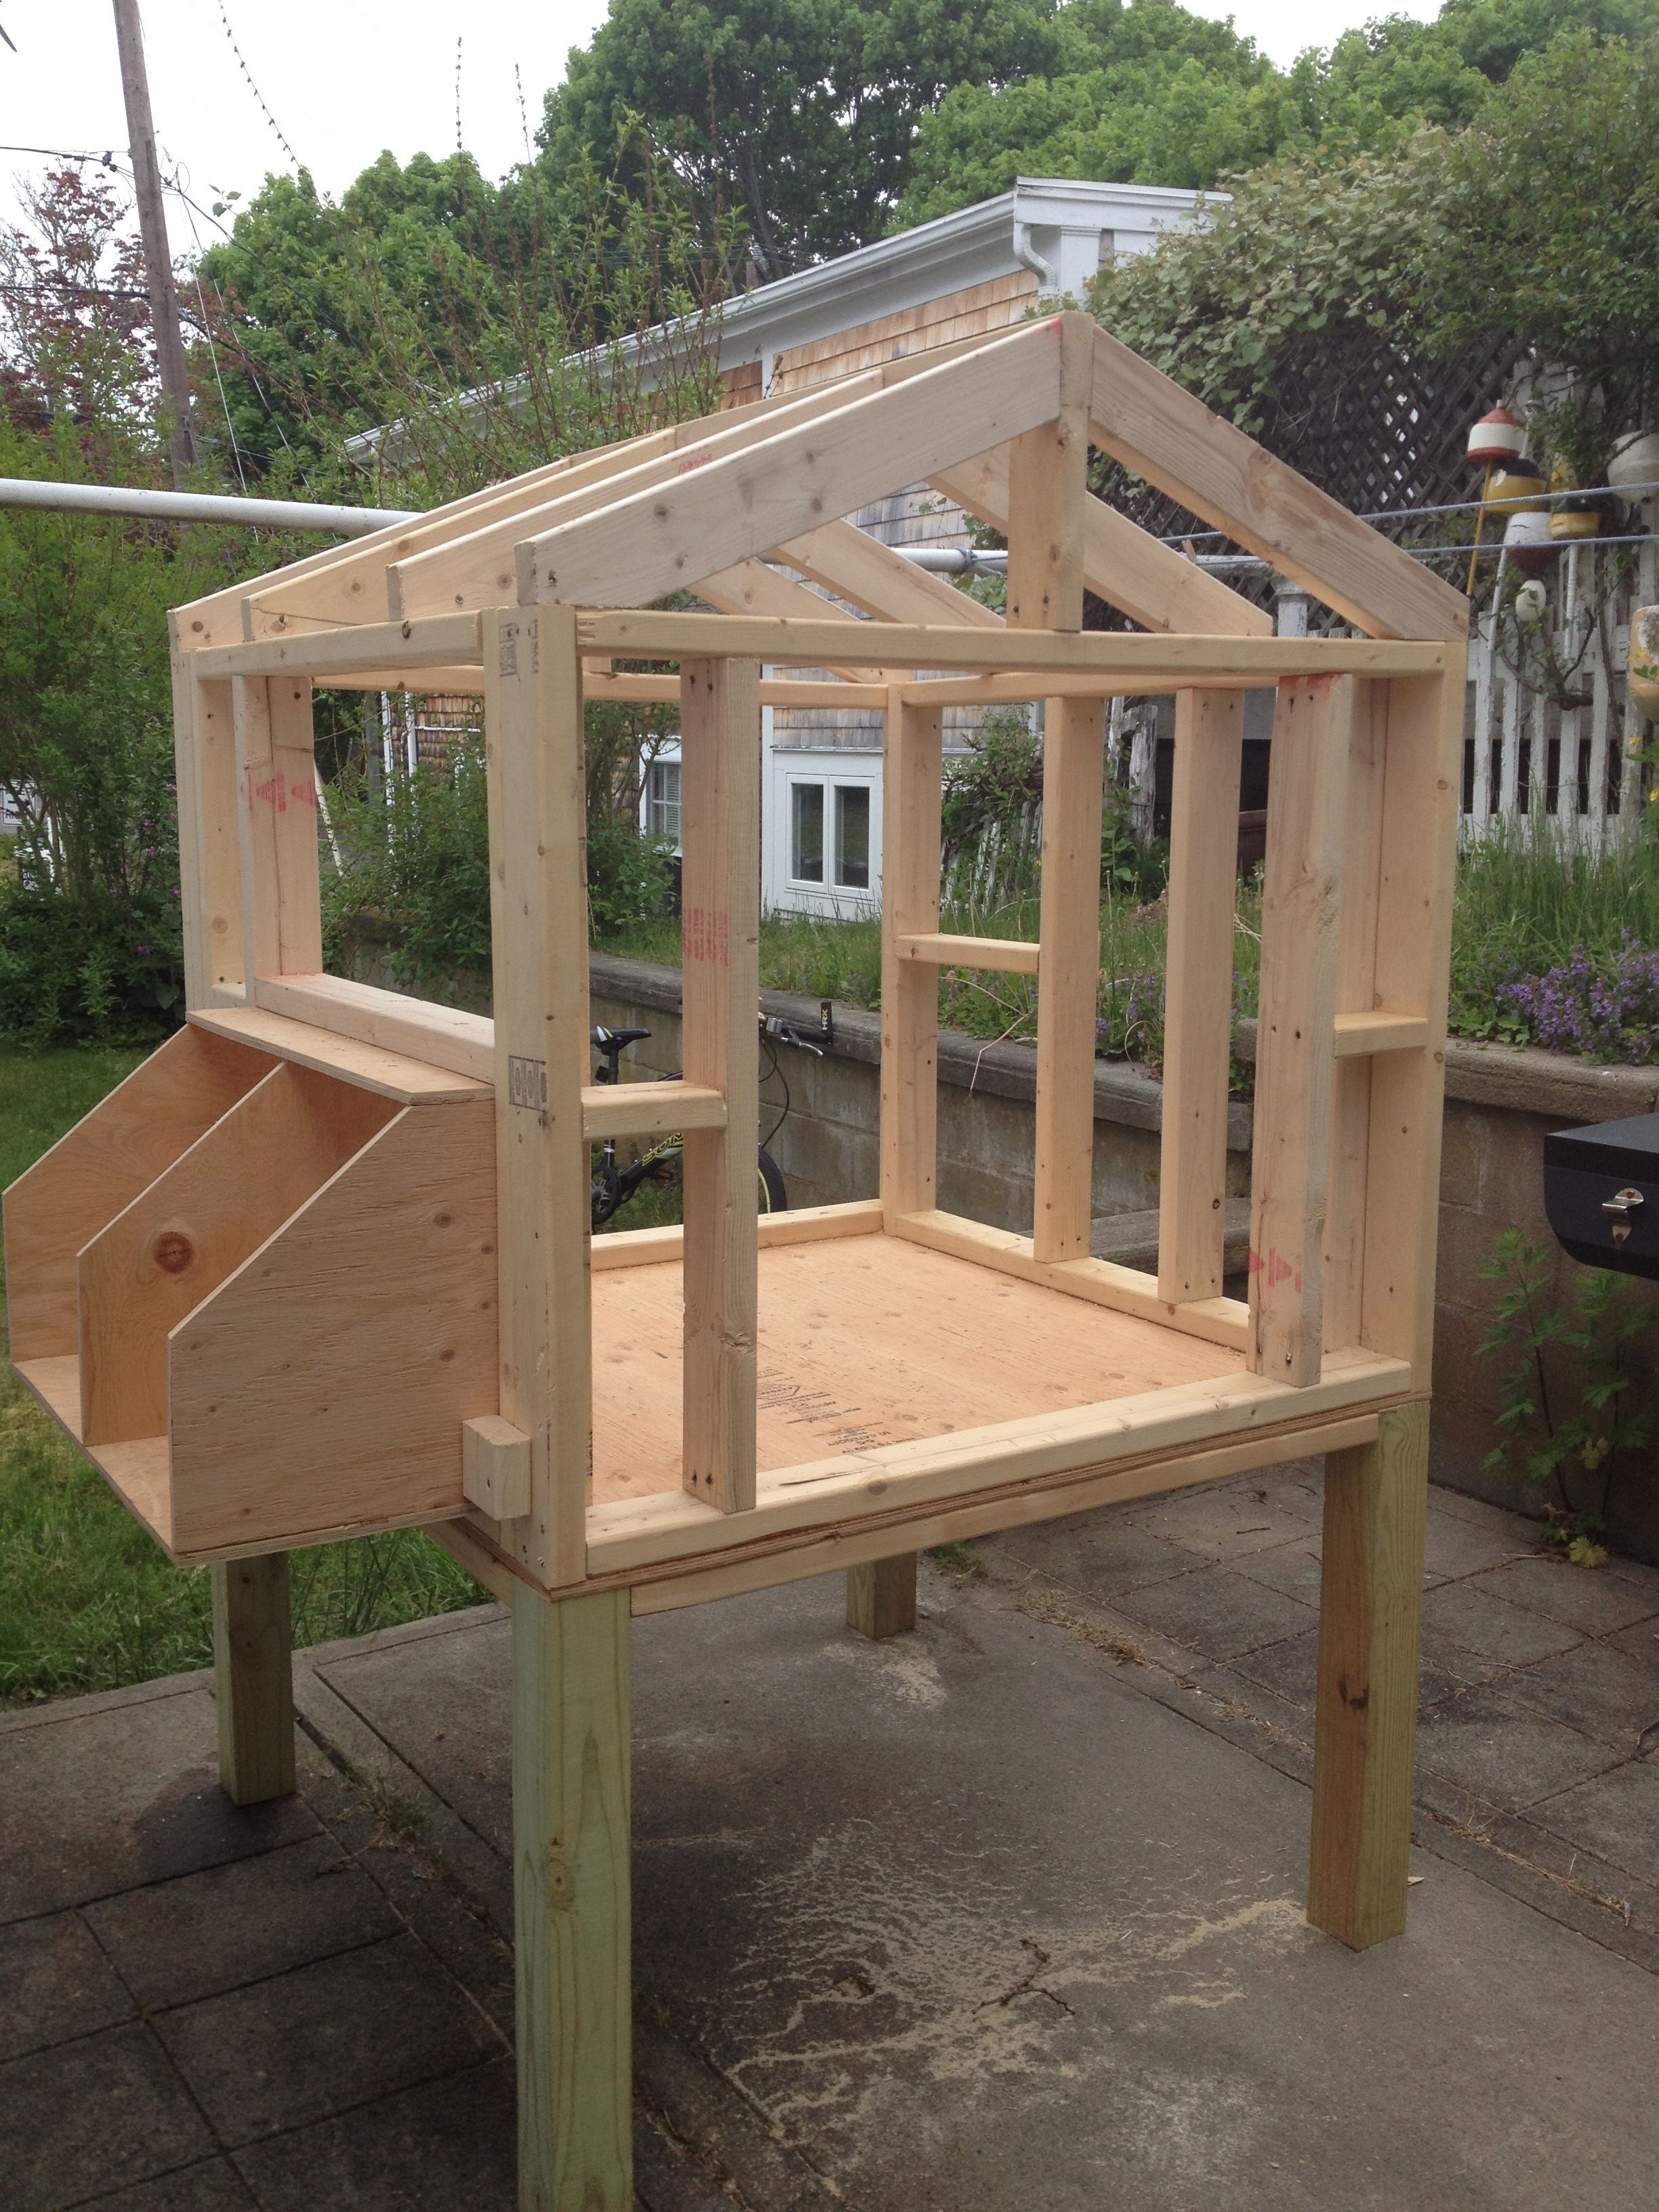 Backyard Chicken Coop Plans Backyard Chicken Coops: The Coop Framework Building A Chicken Coop Does Not Have To Be